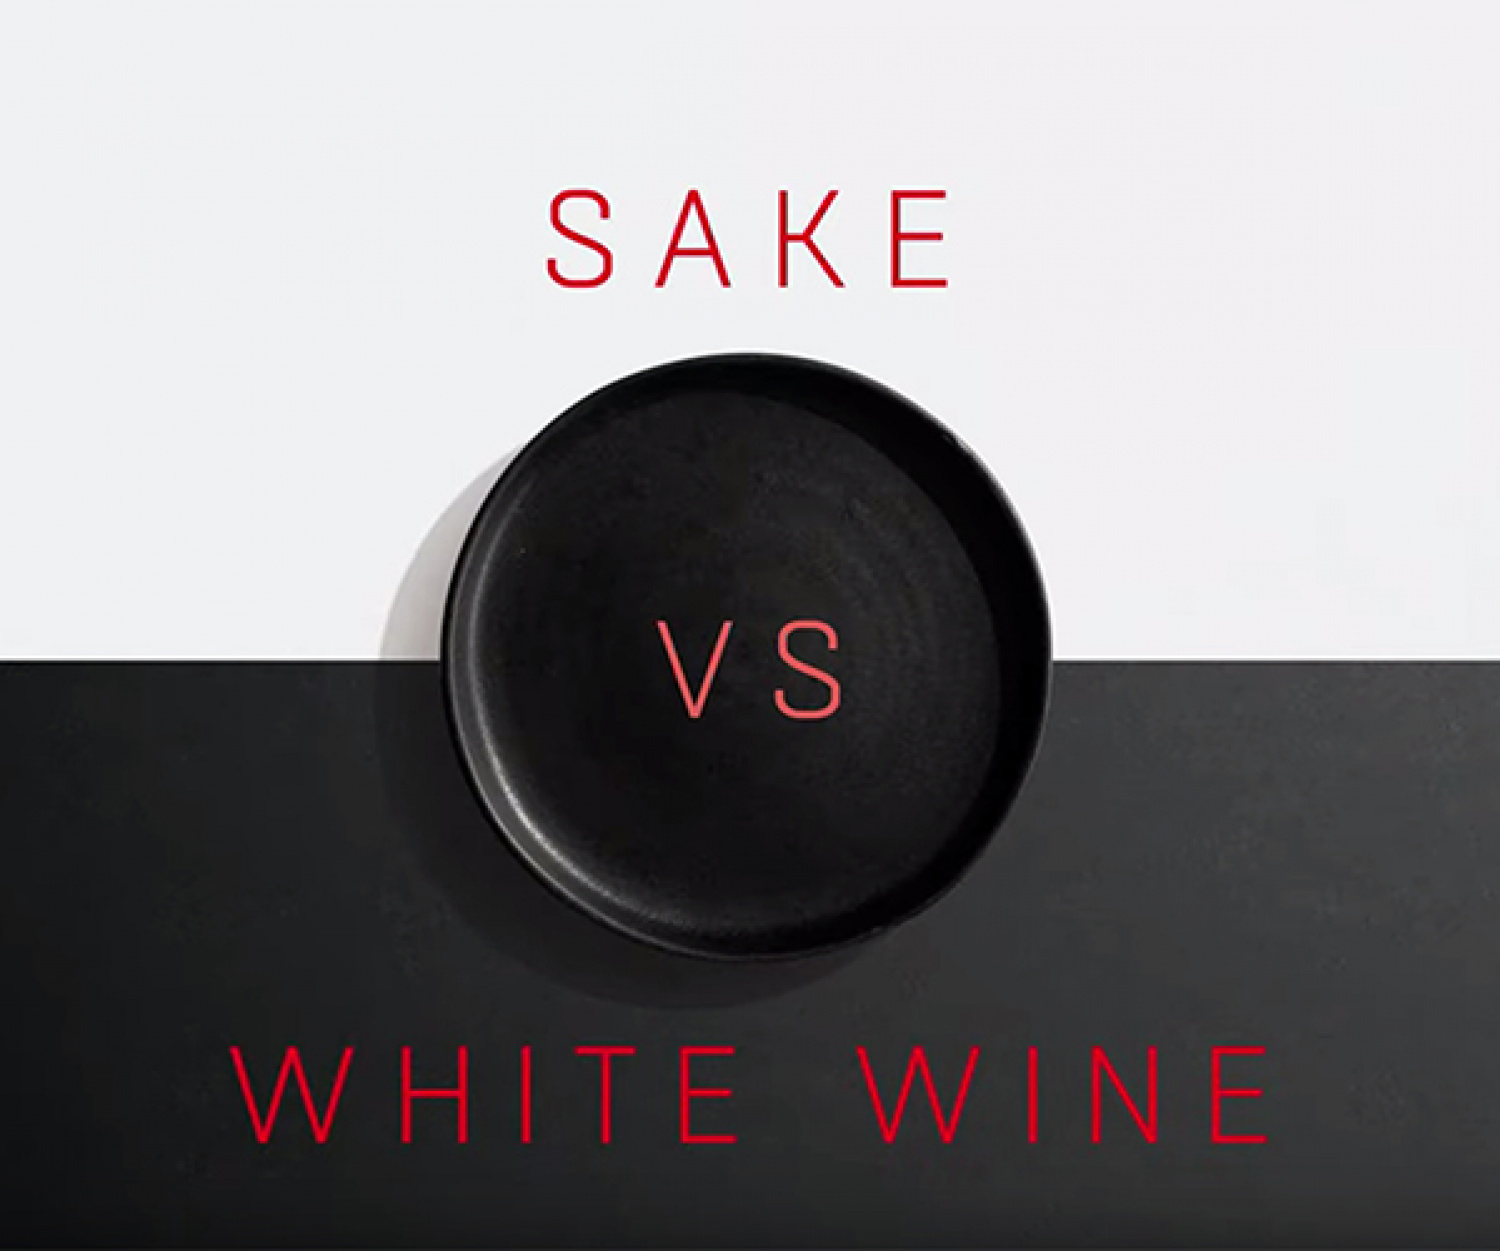 Sake vs white wine